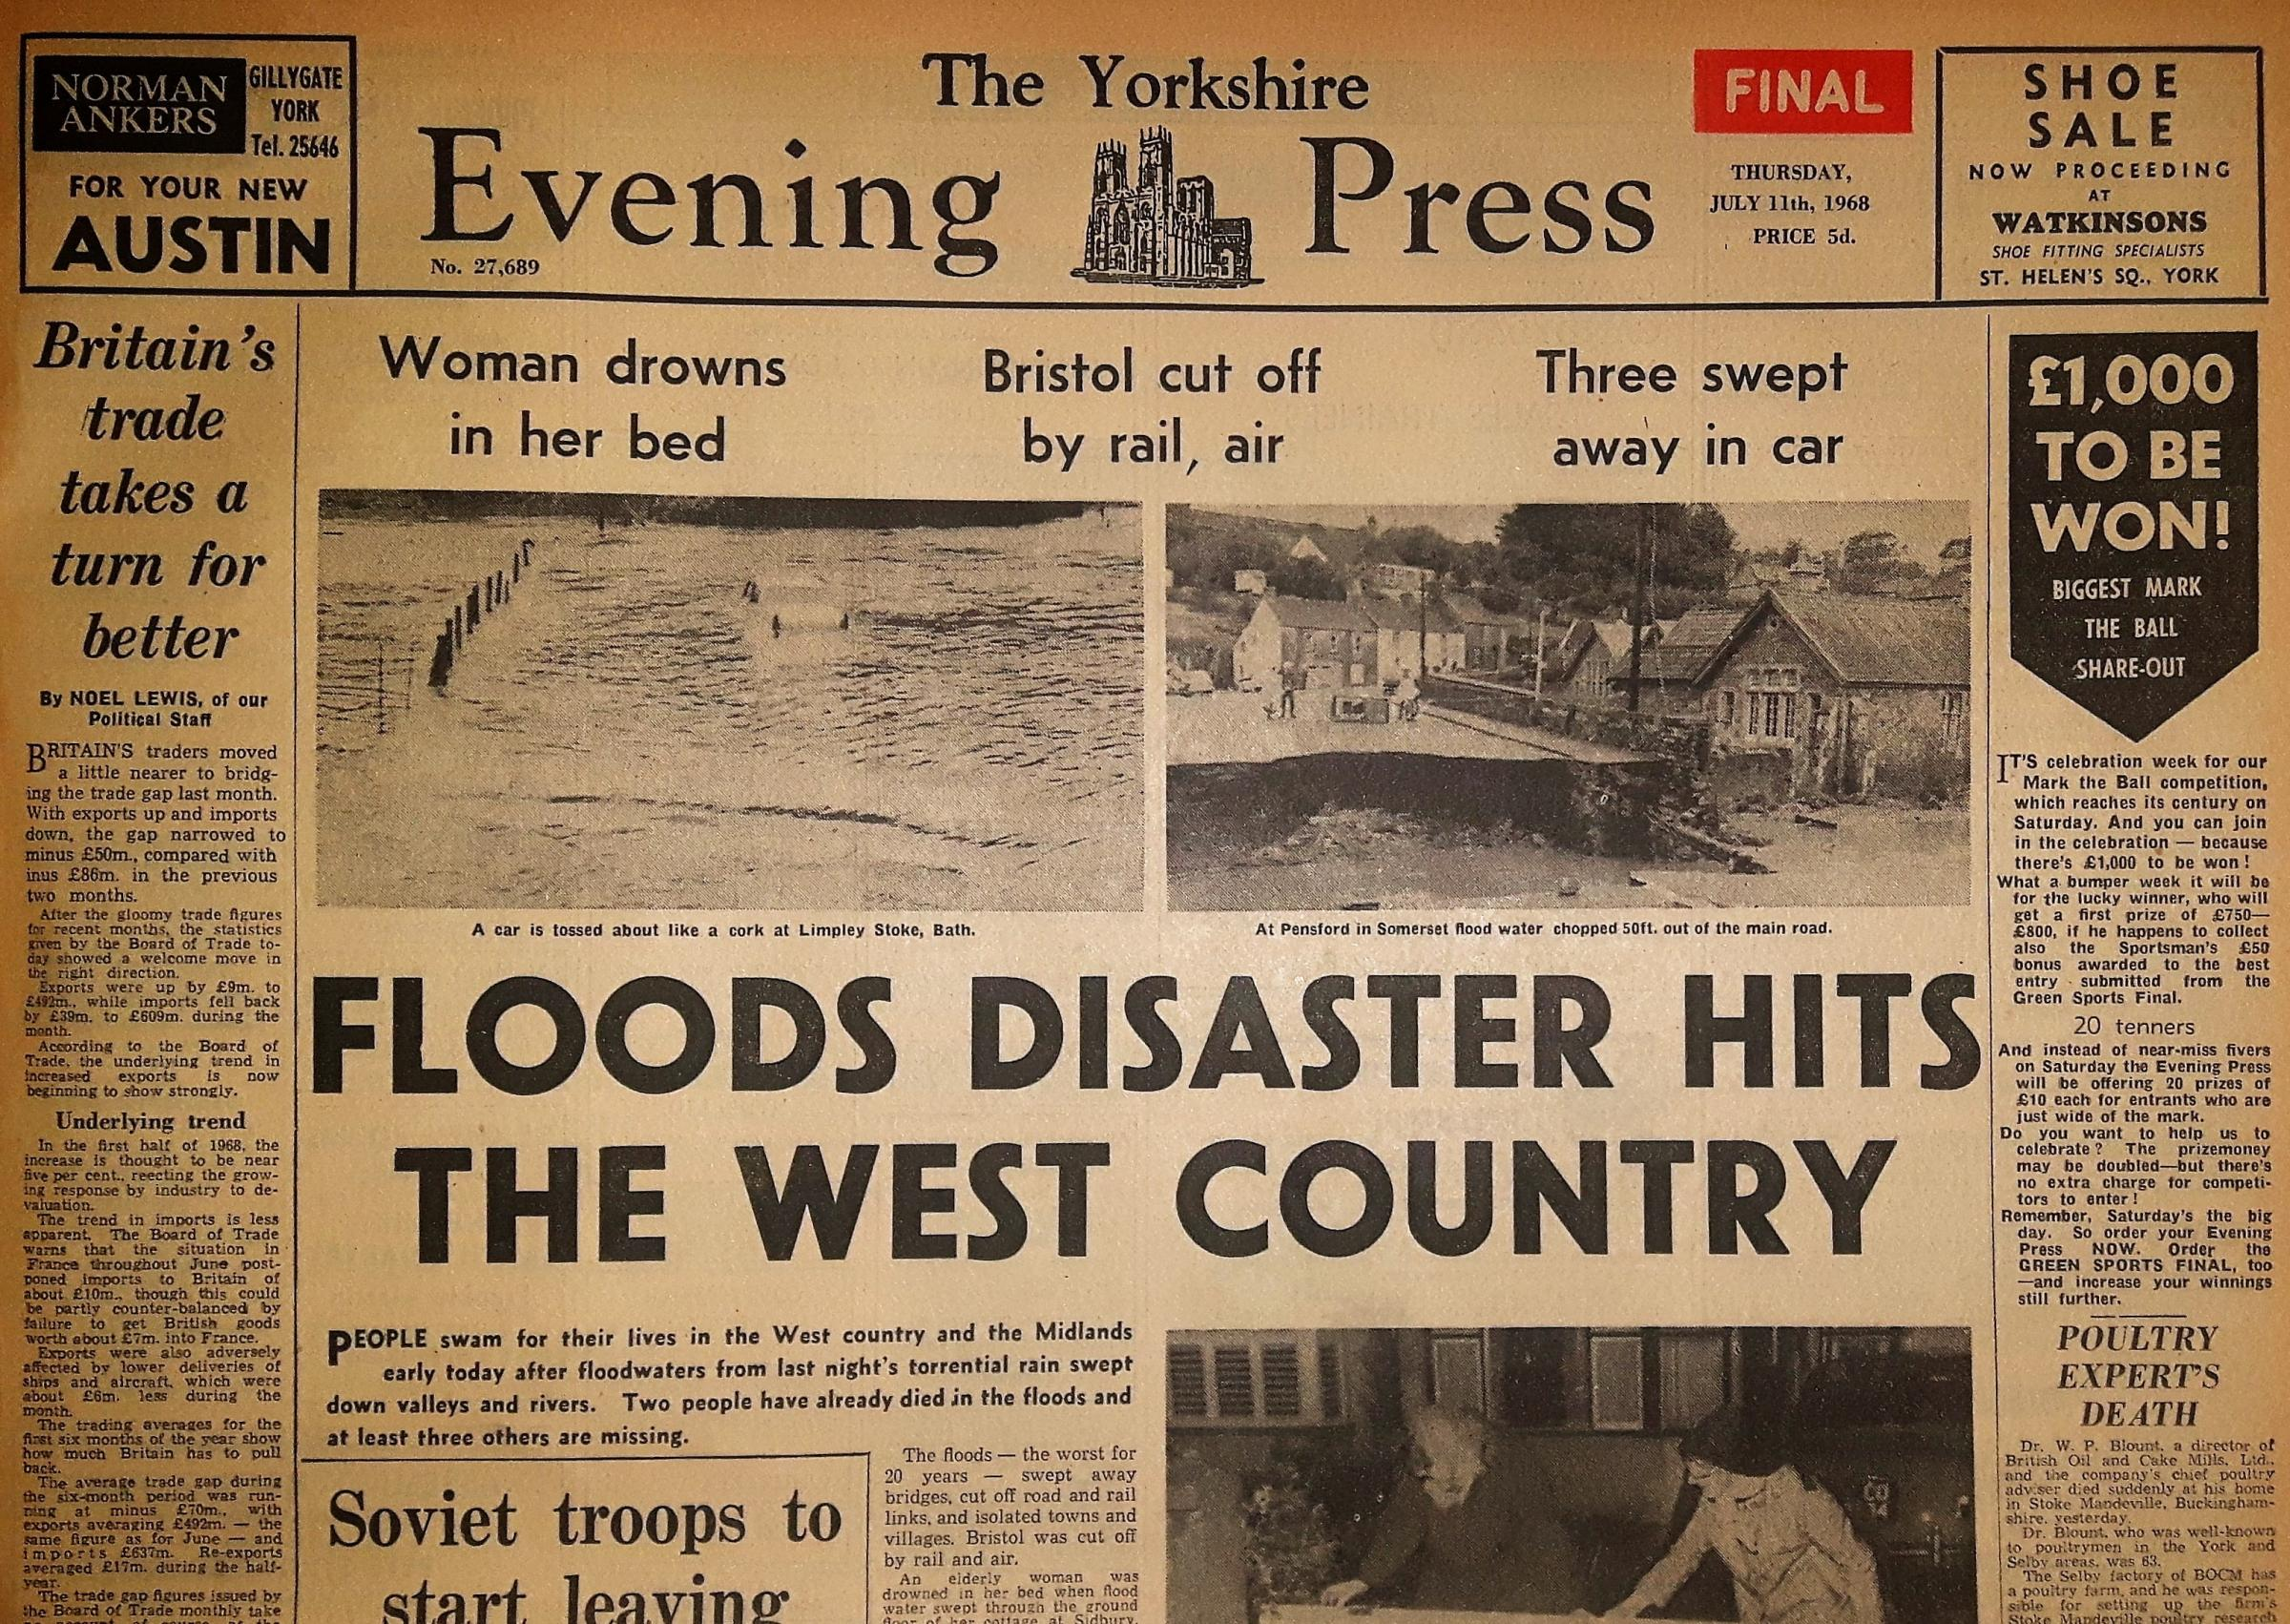 The Yorkshire Evening Press front page from July 11, 1968